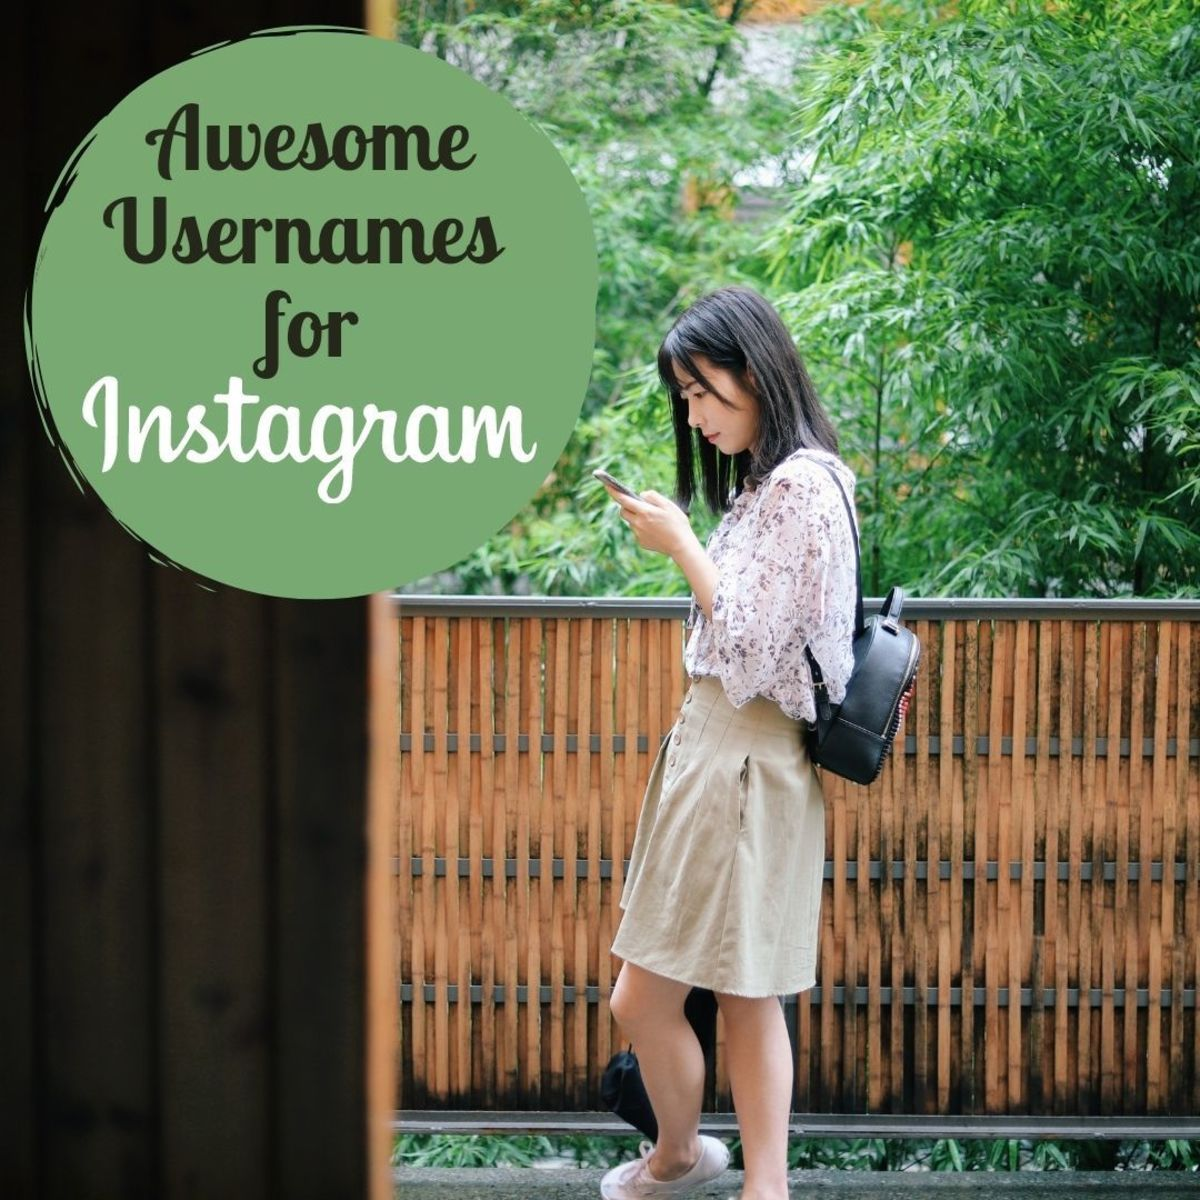 Pick a username that describes your personality and the types of photos you will be sharing on Instagram.